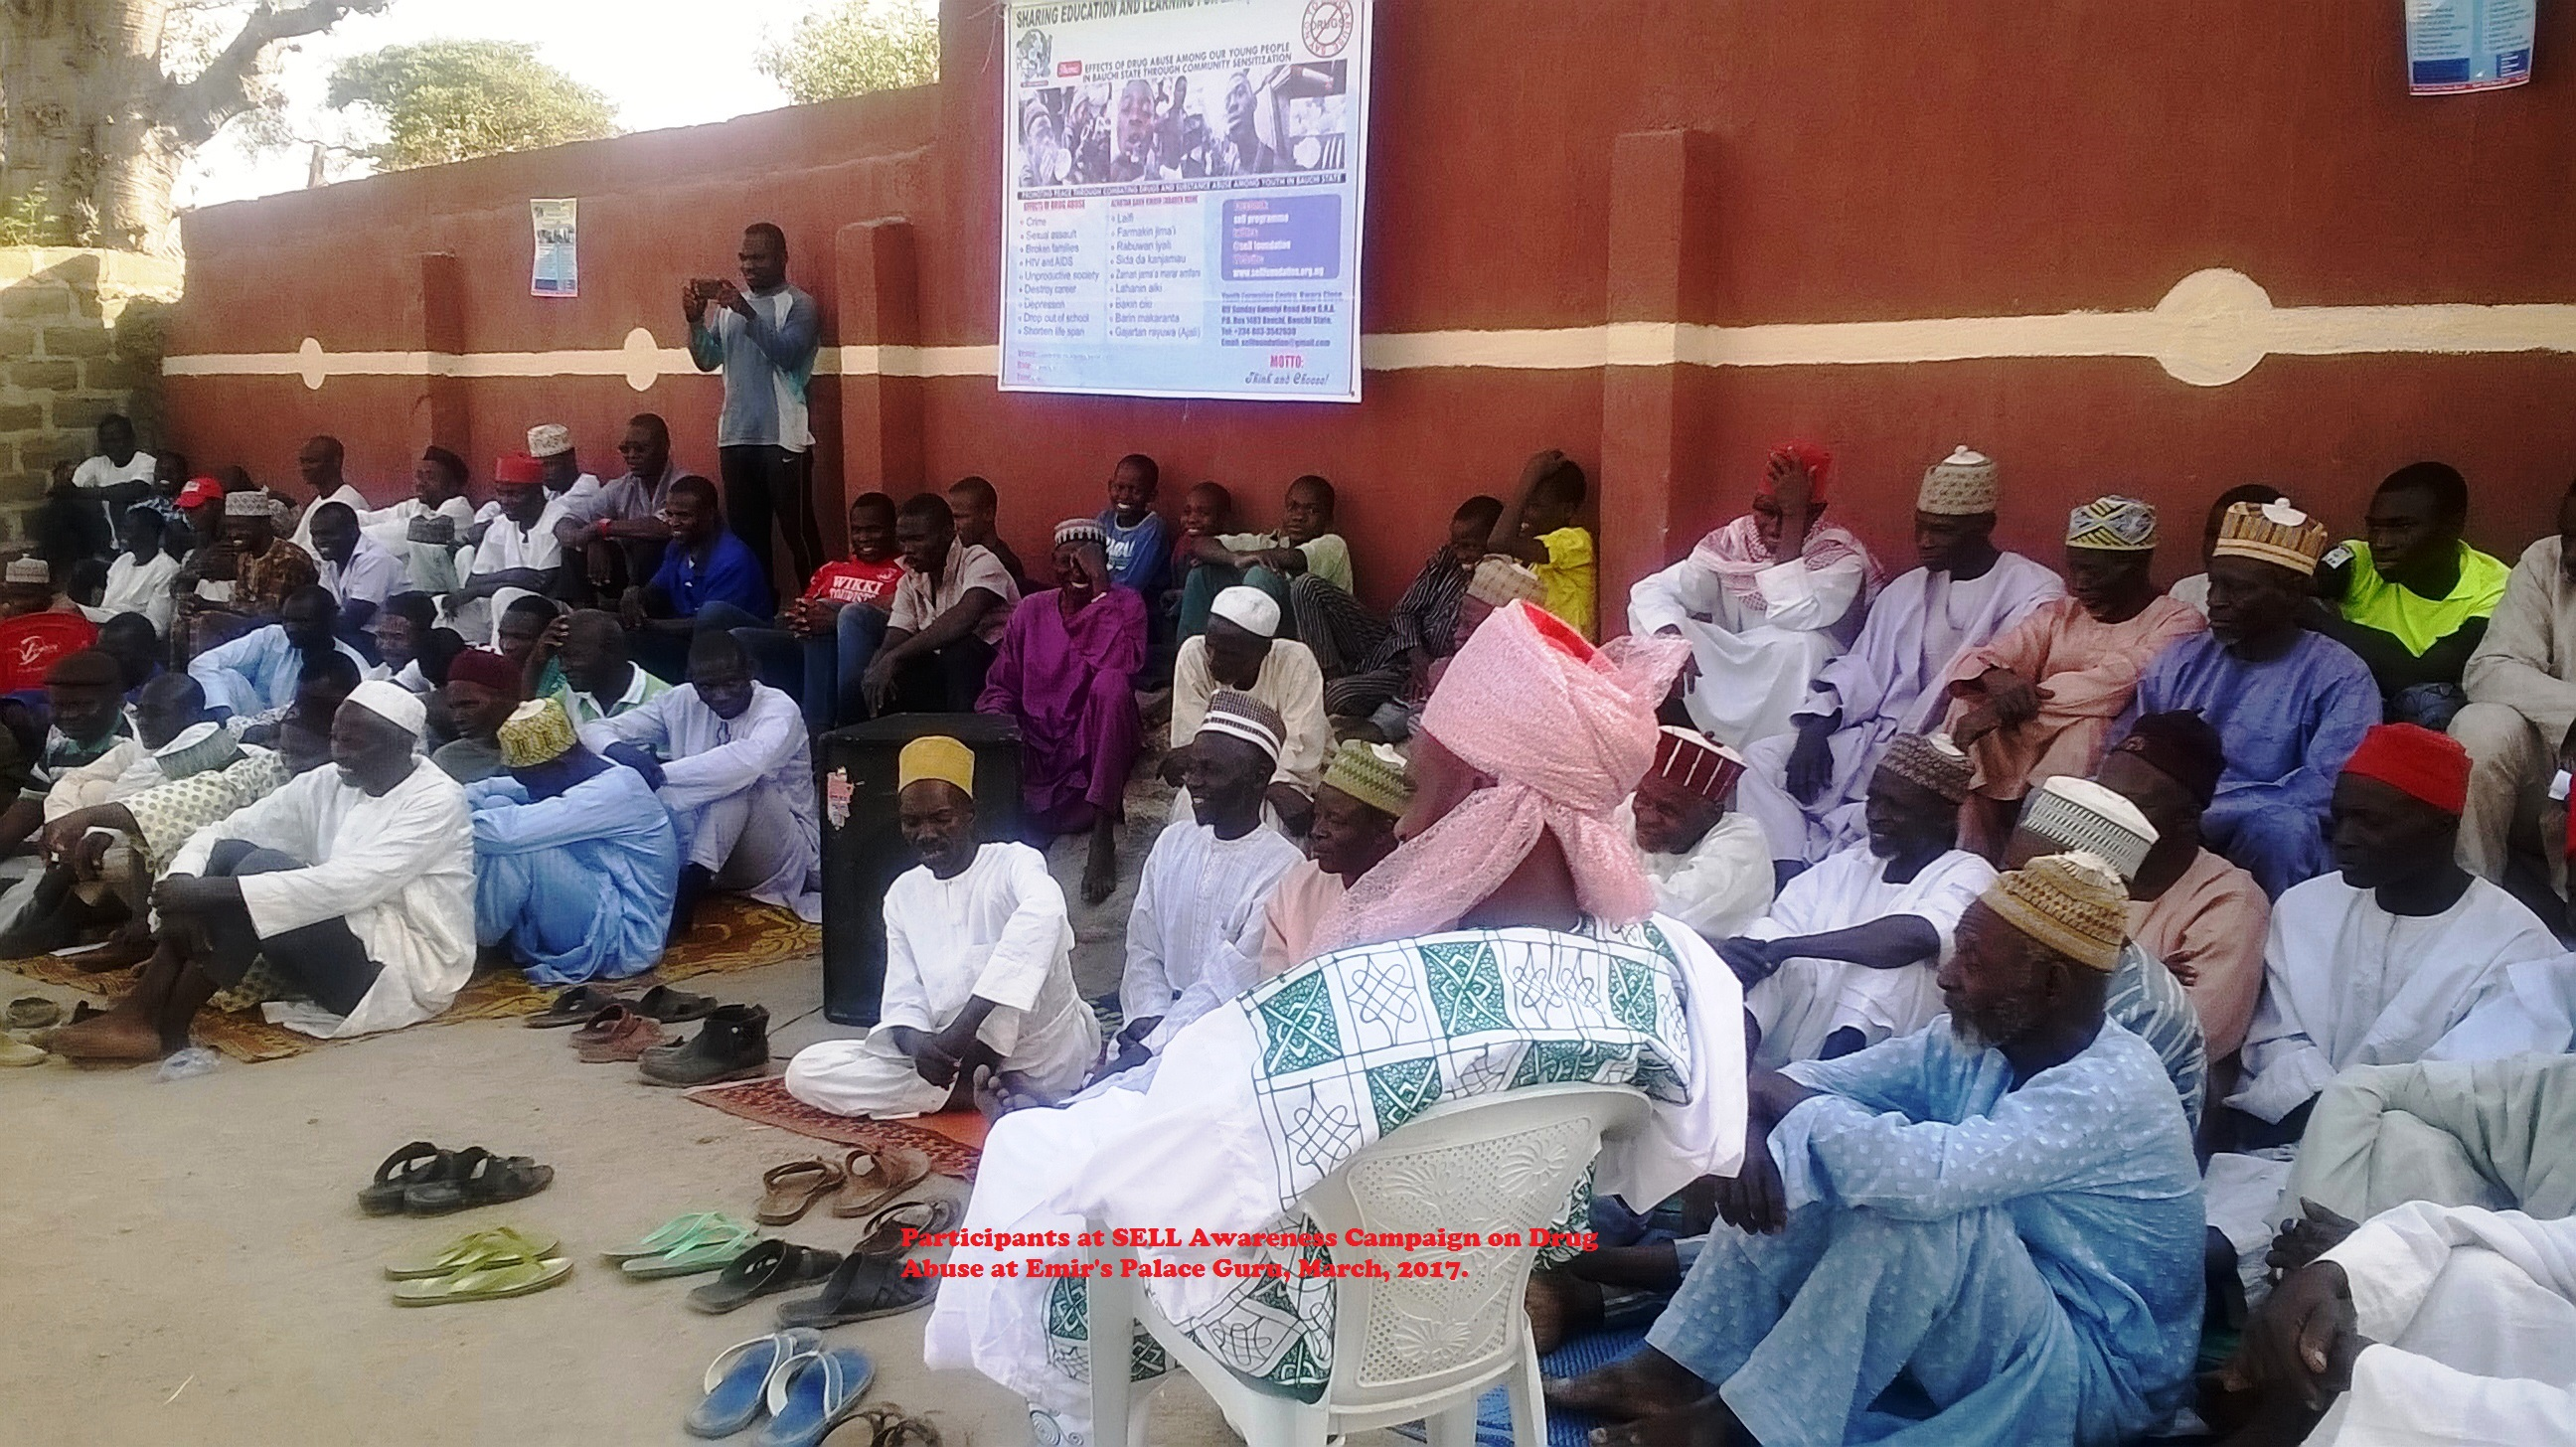 Participants at SELL Awareness Campaign on Drug Abuse at Emir's Palace Guru, March, 2017.